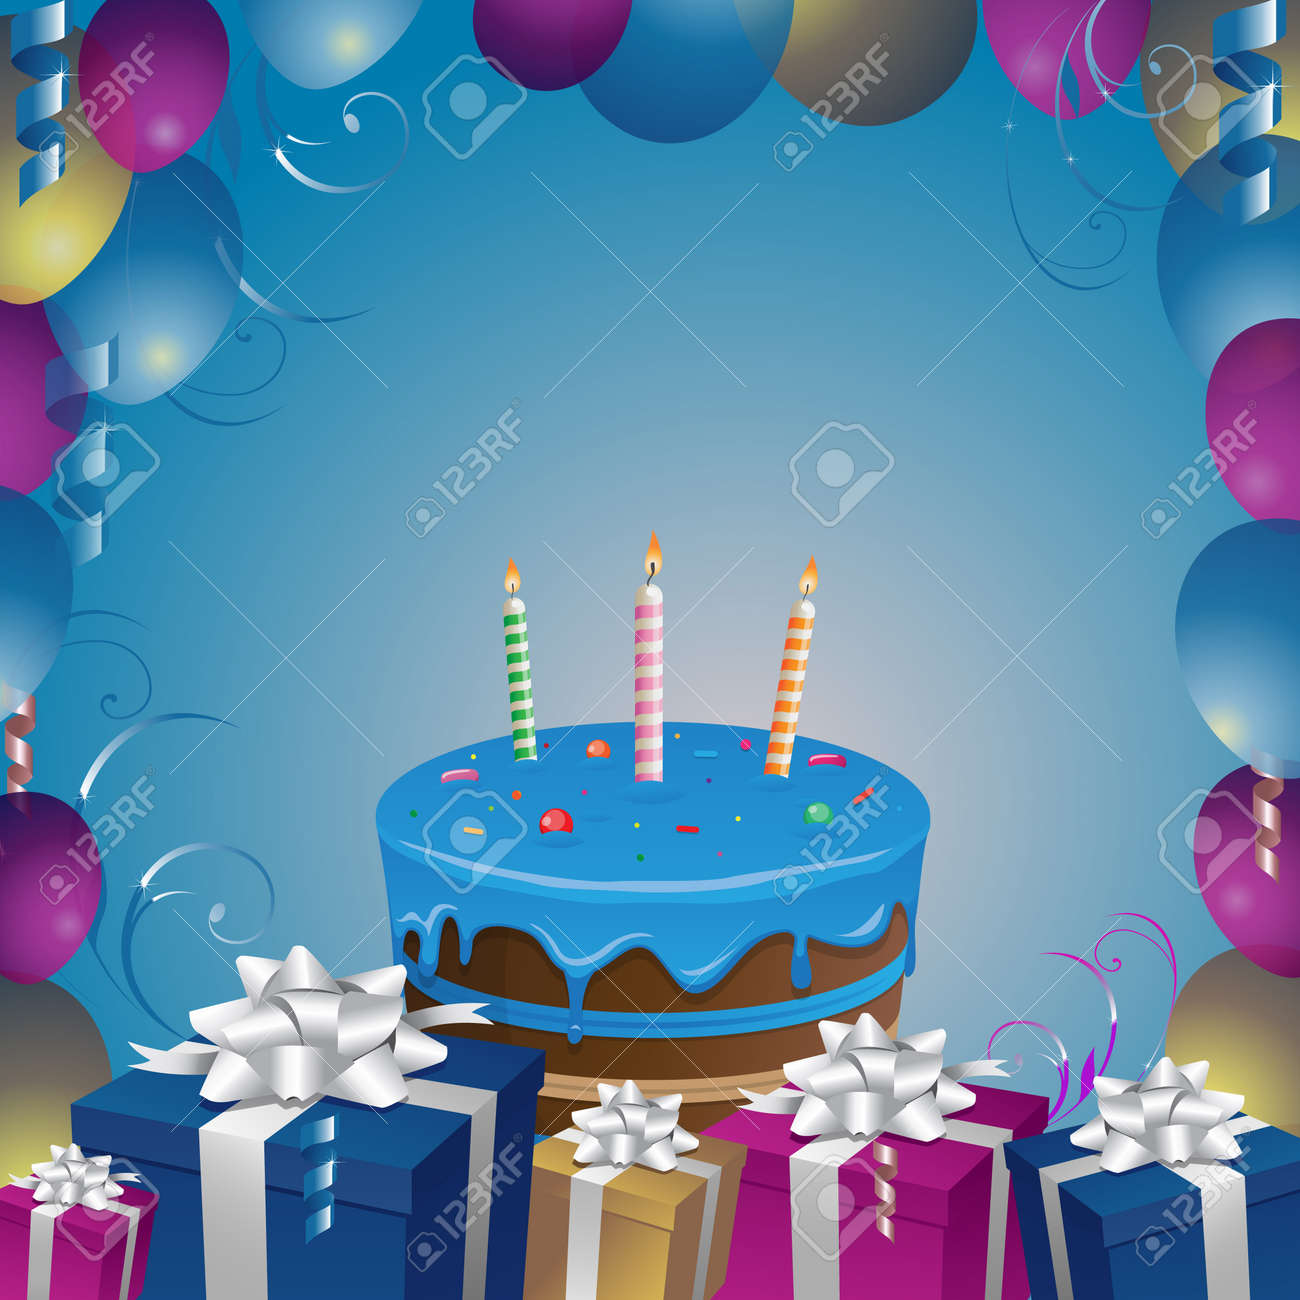 Beautiful Cake And Gifts Birthday Background Vector Illustration Clip Art Stock